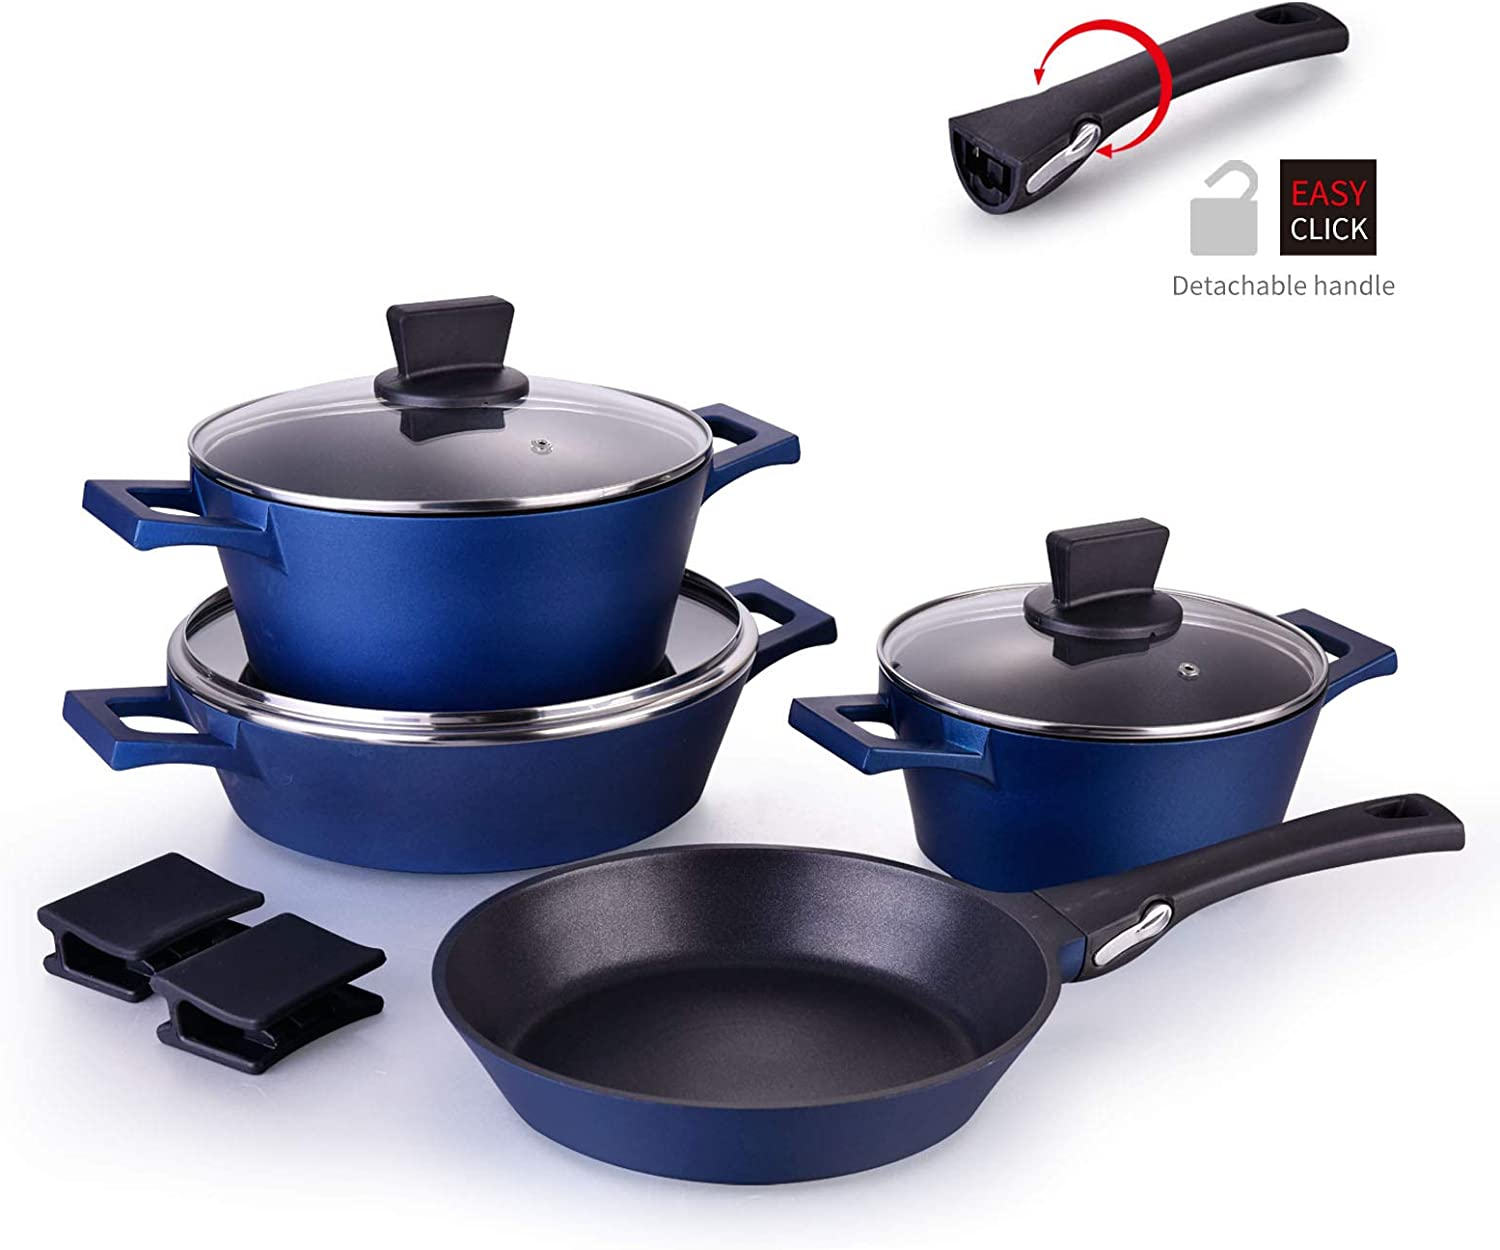 MGUOGUO 10 Piece Cookware Set Nonstick Pots and Pans Set Kitchenware Induction Soup Pot with Lid, Removable Handle Skillet Pan, Suitable for All Stoves Dishwasher Safe, Anti-Scalding Silicone, Blue